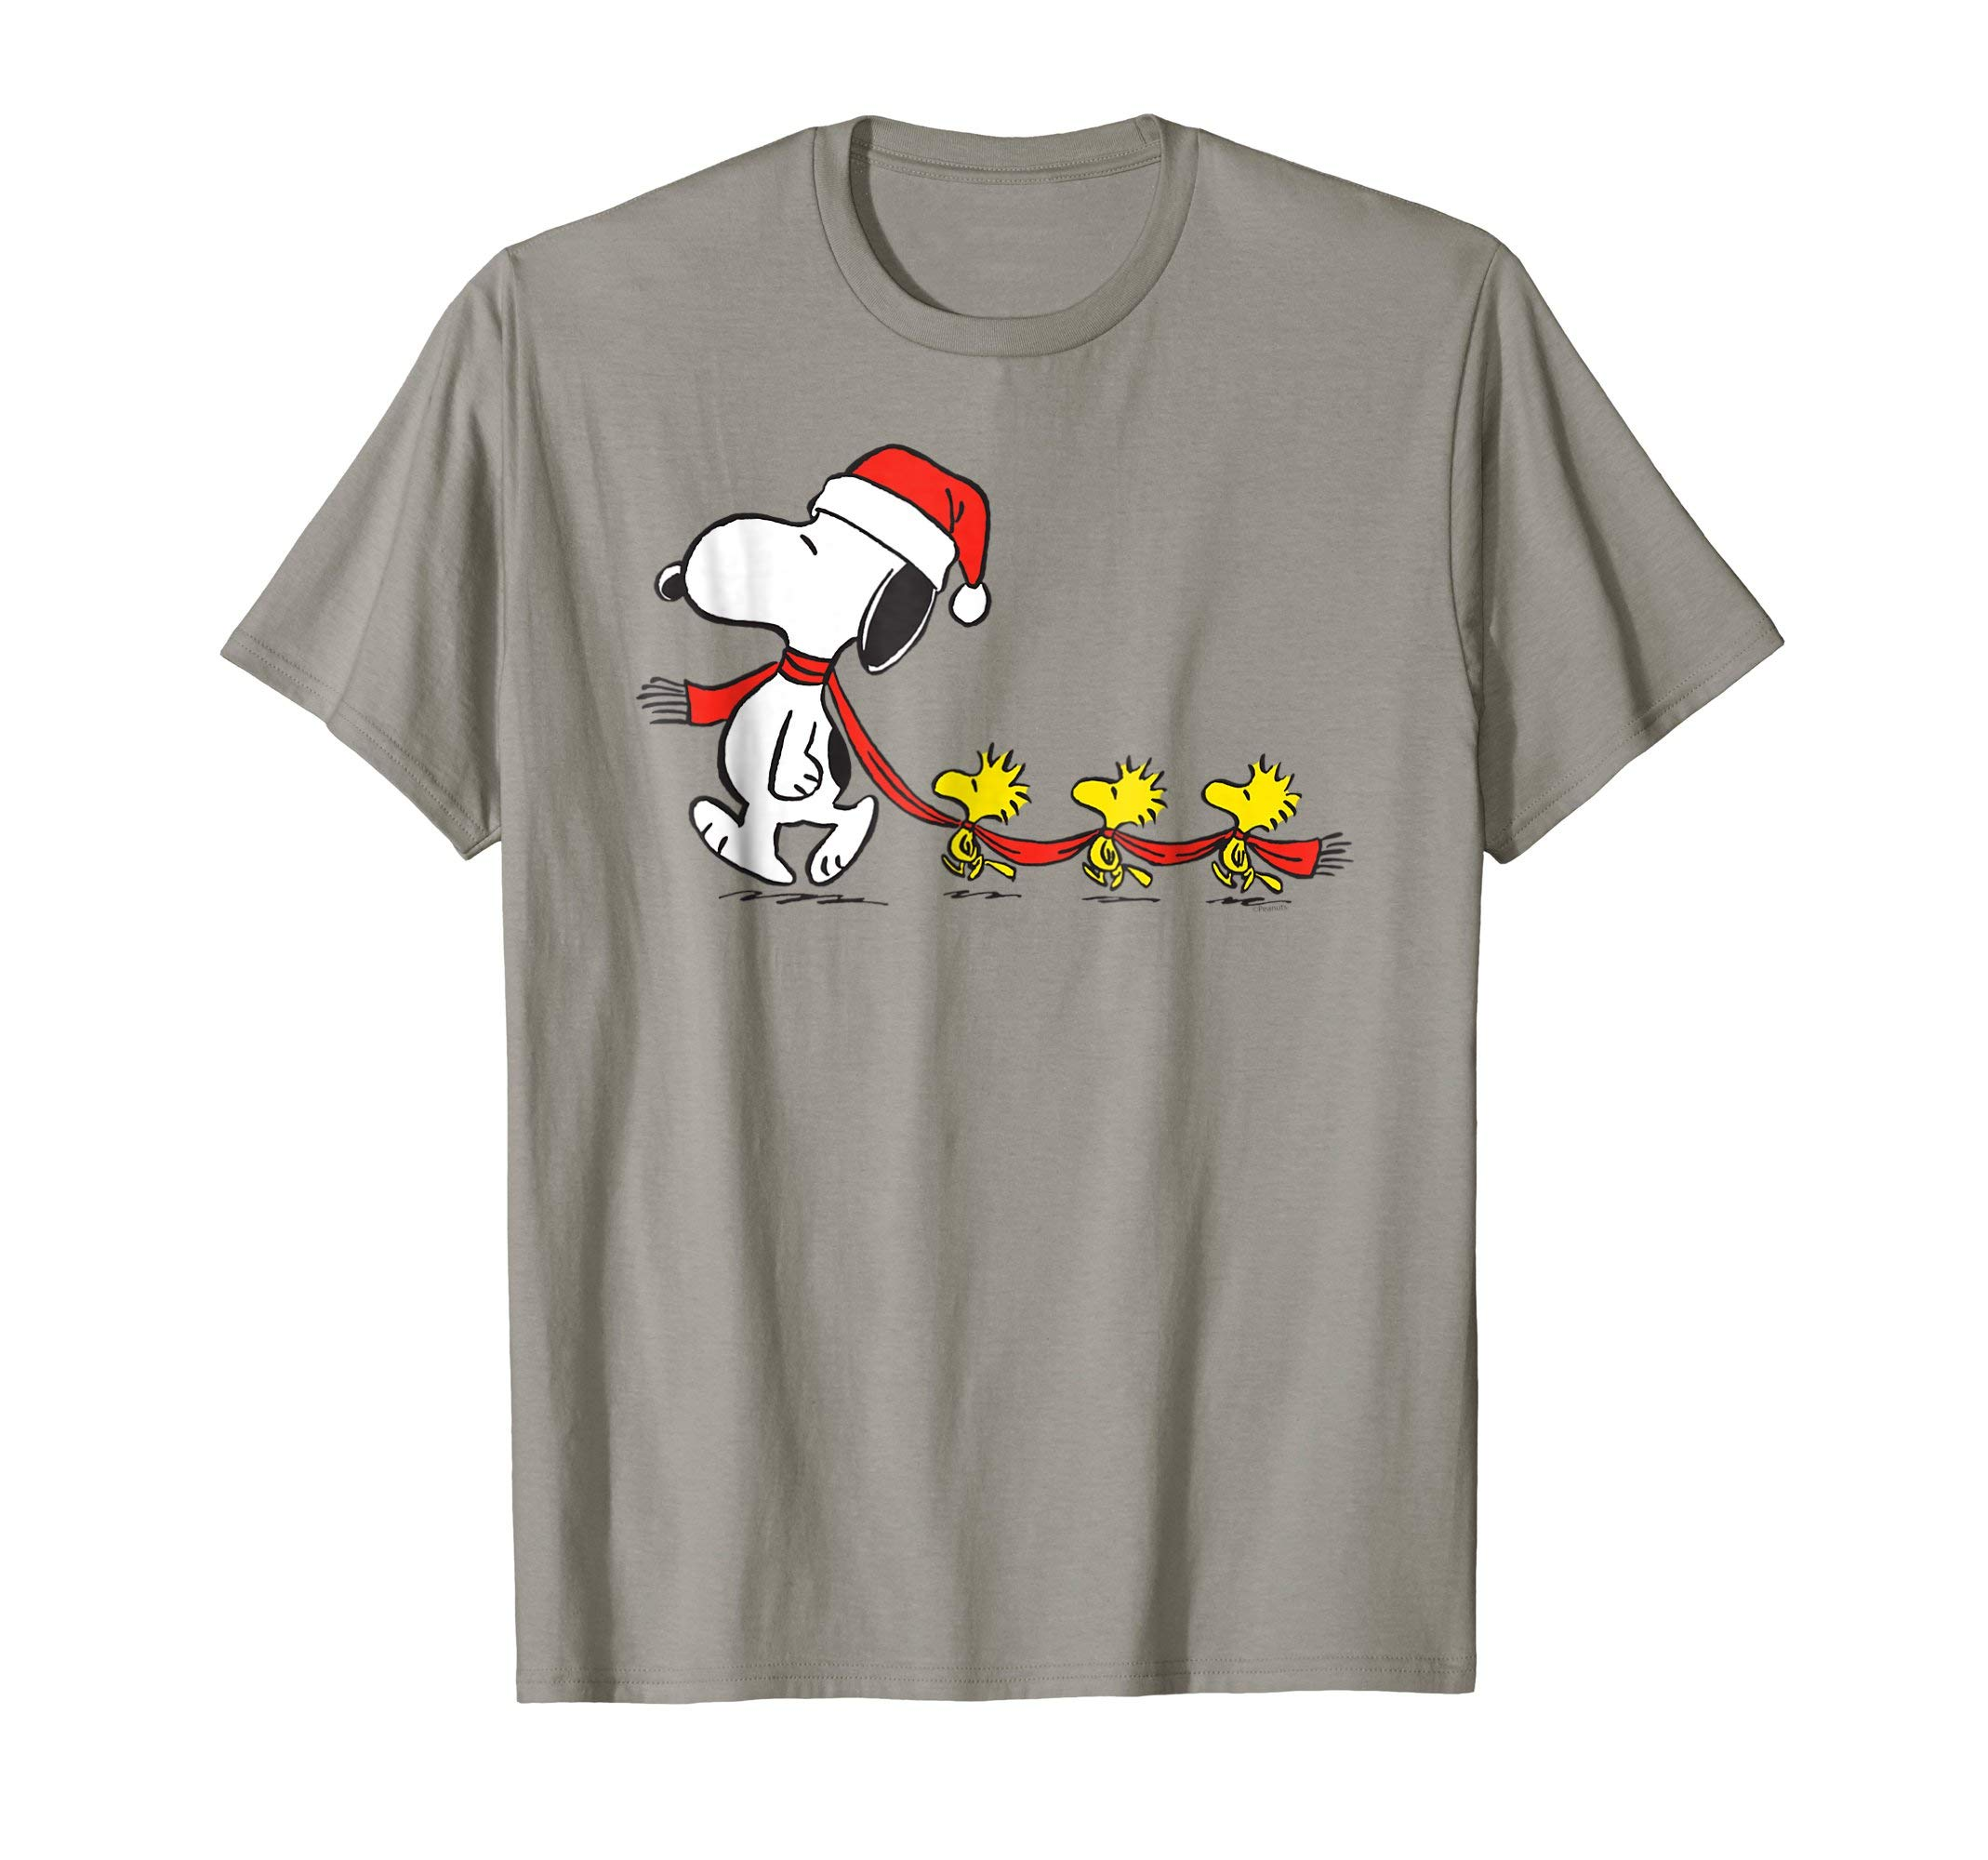 Image of Funny Santa Snoopy Christmas T-Shirt for Kids and Adults